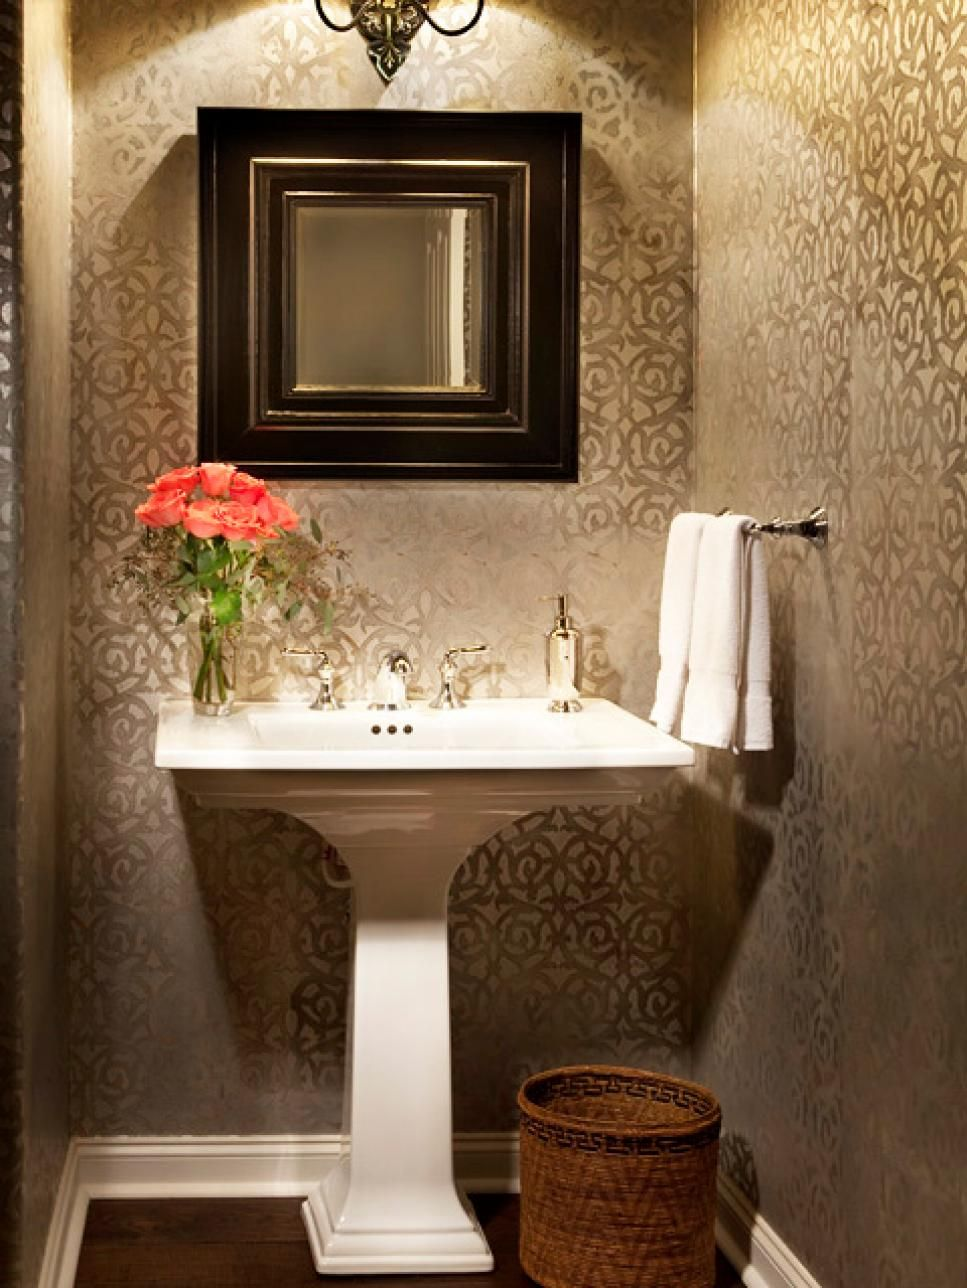 think you cant do graphic wallpaper in a small space think again a small bathroom is the perfect place to try out a daring wall treatment - Wallpaper For Bathroom